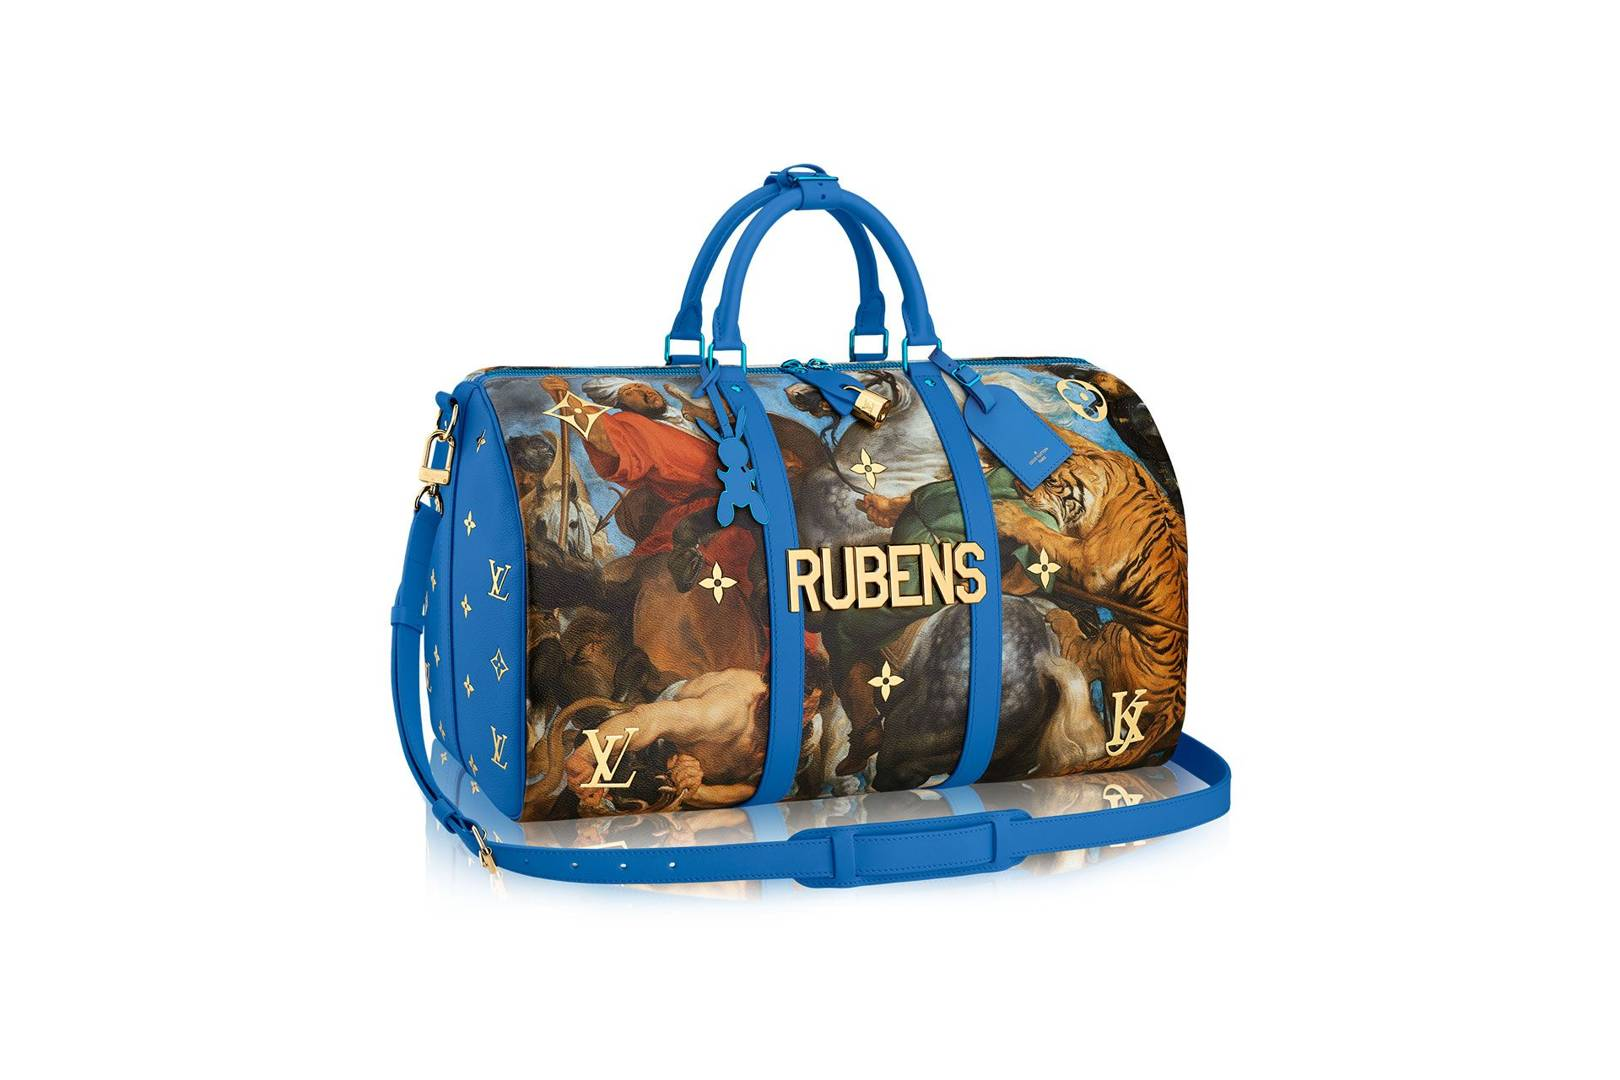 Louis Vuitton Launches Collaboration With Jeff Koons  8f57e1d960832